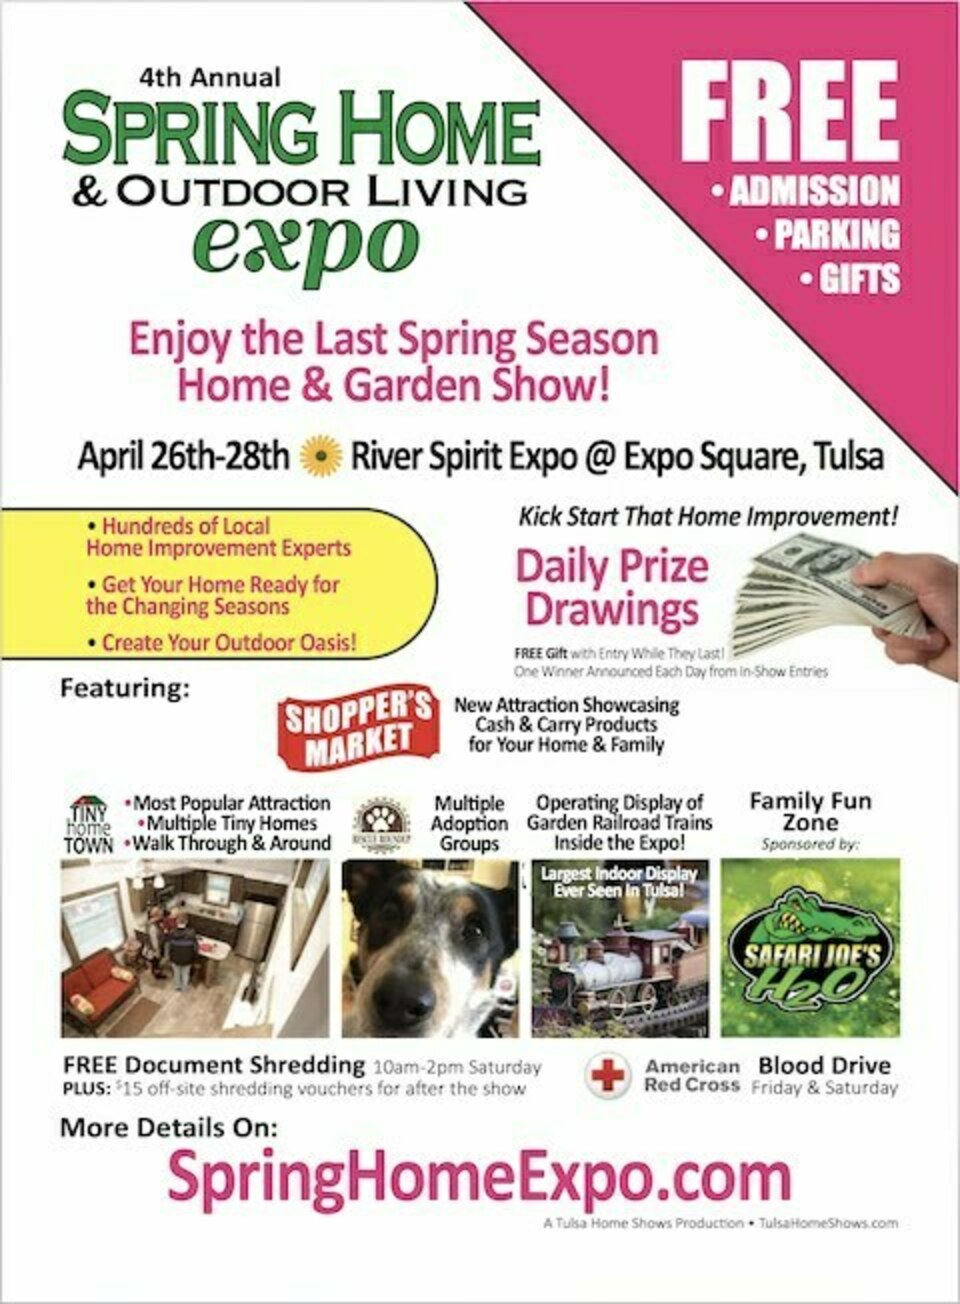 Spring home expo 2019 show guide cover